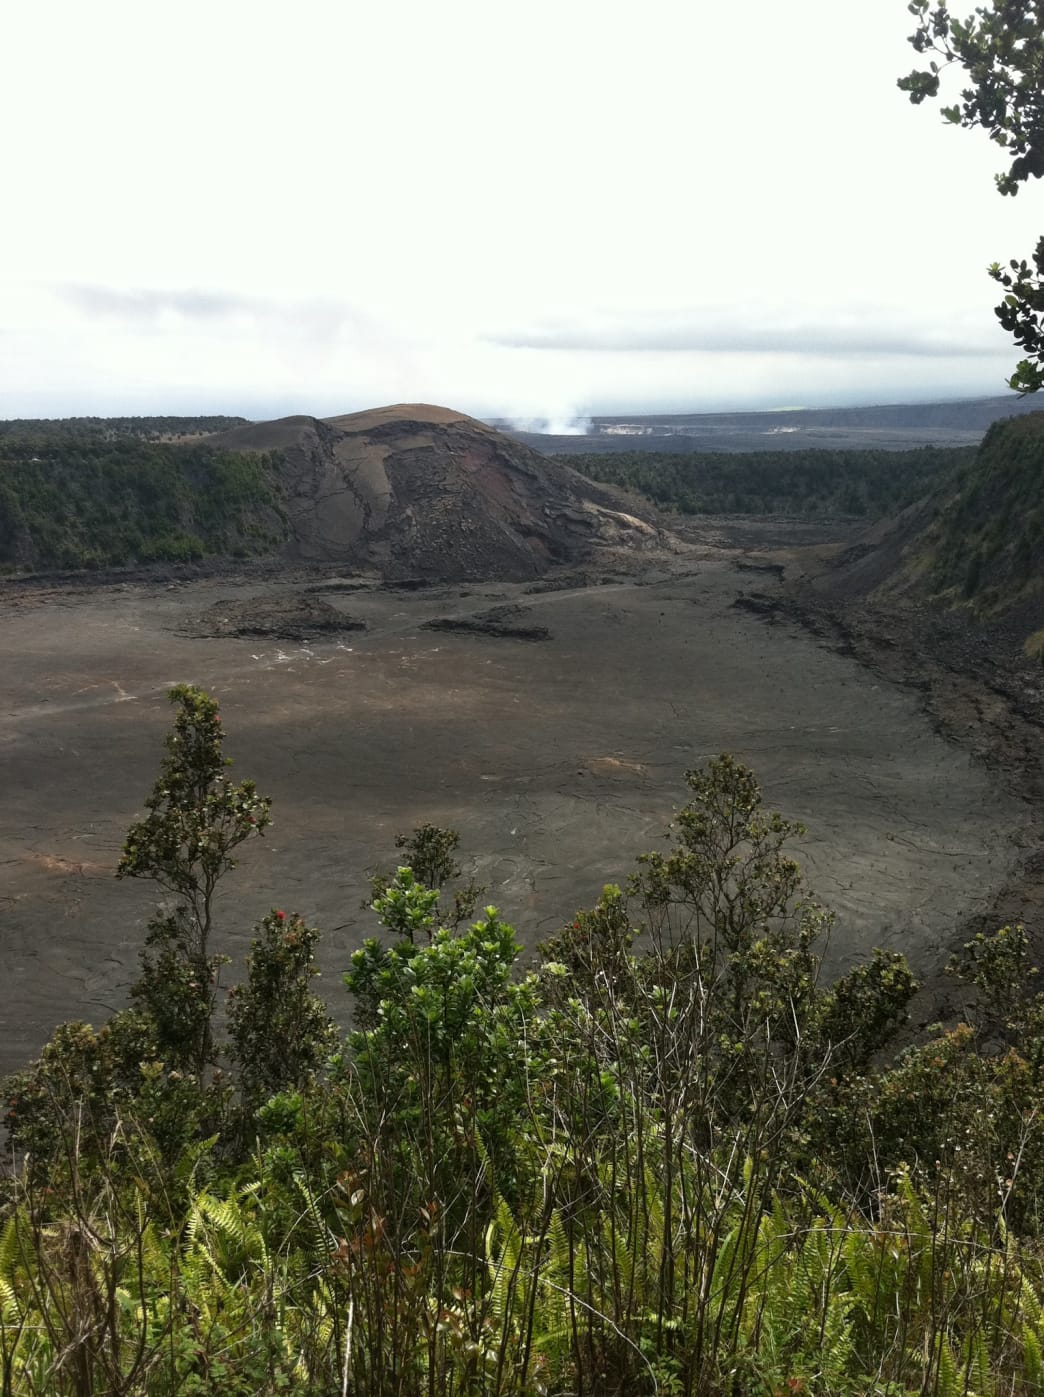 Kīlauea Iki. You can see the trail running through the middle.